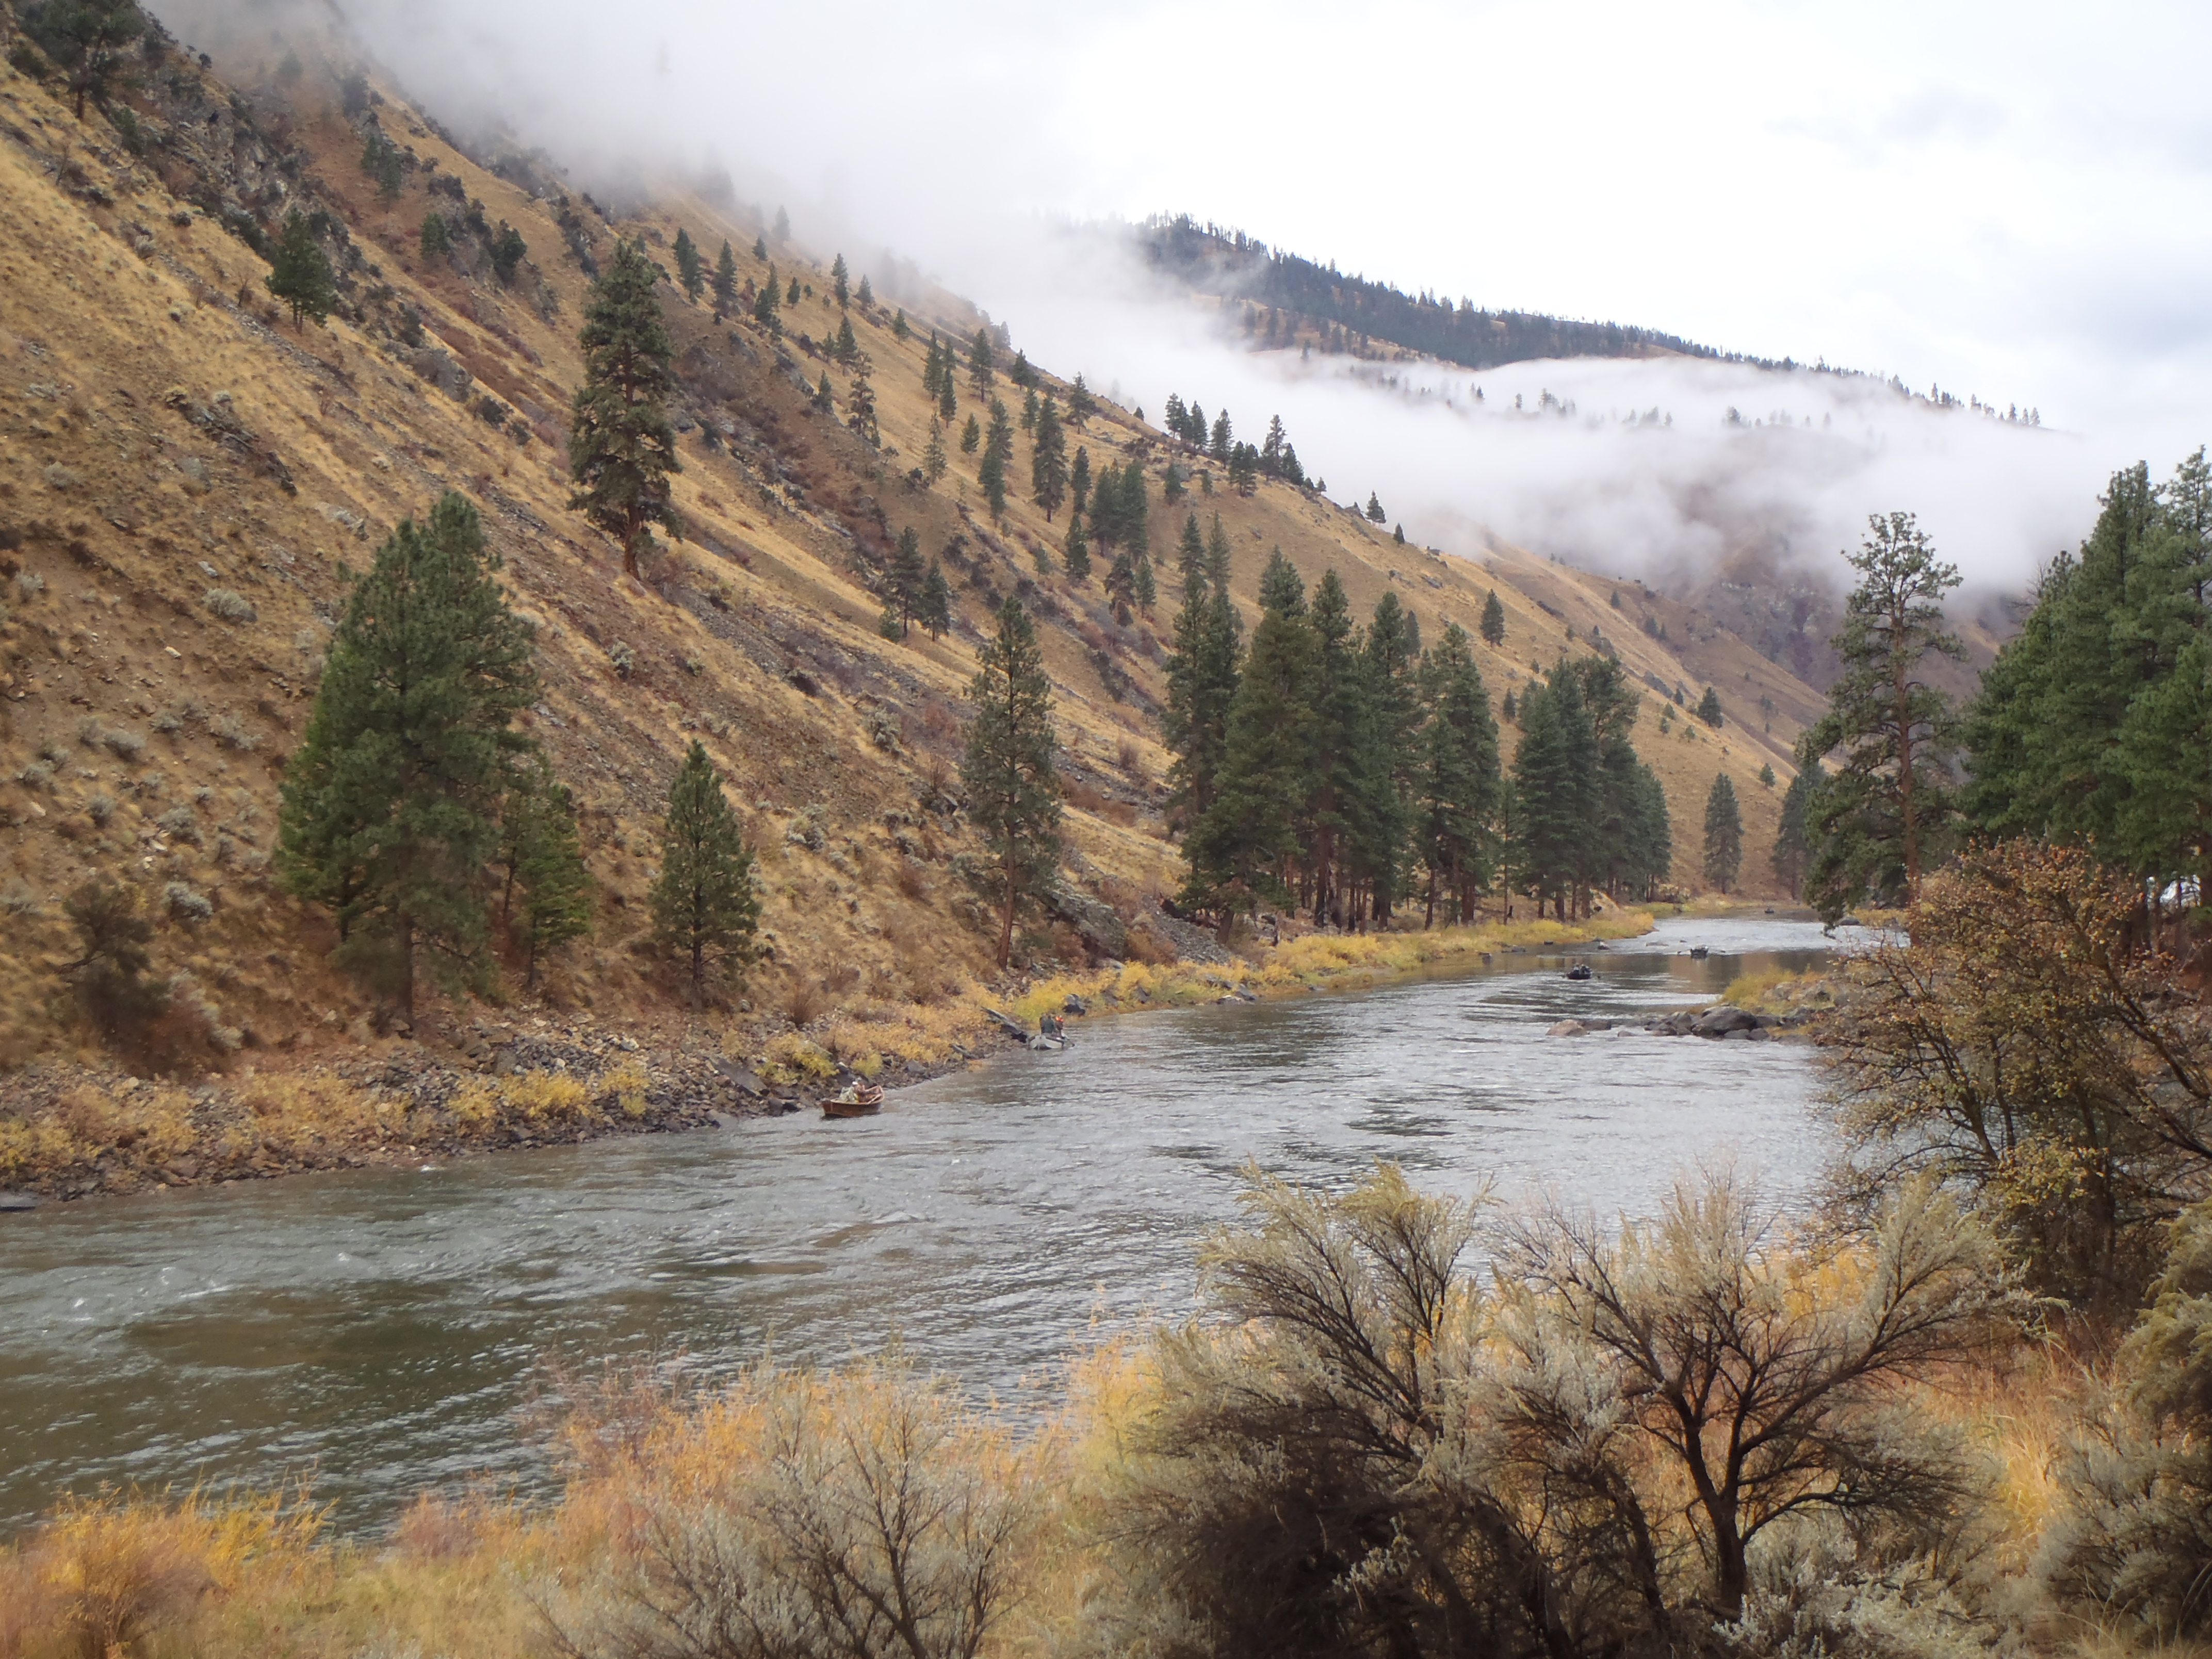 Steelhead Fishing on the Salmon River in October 2016